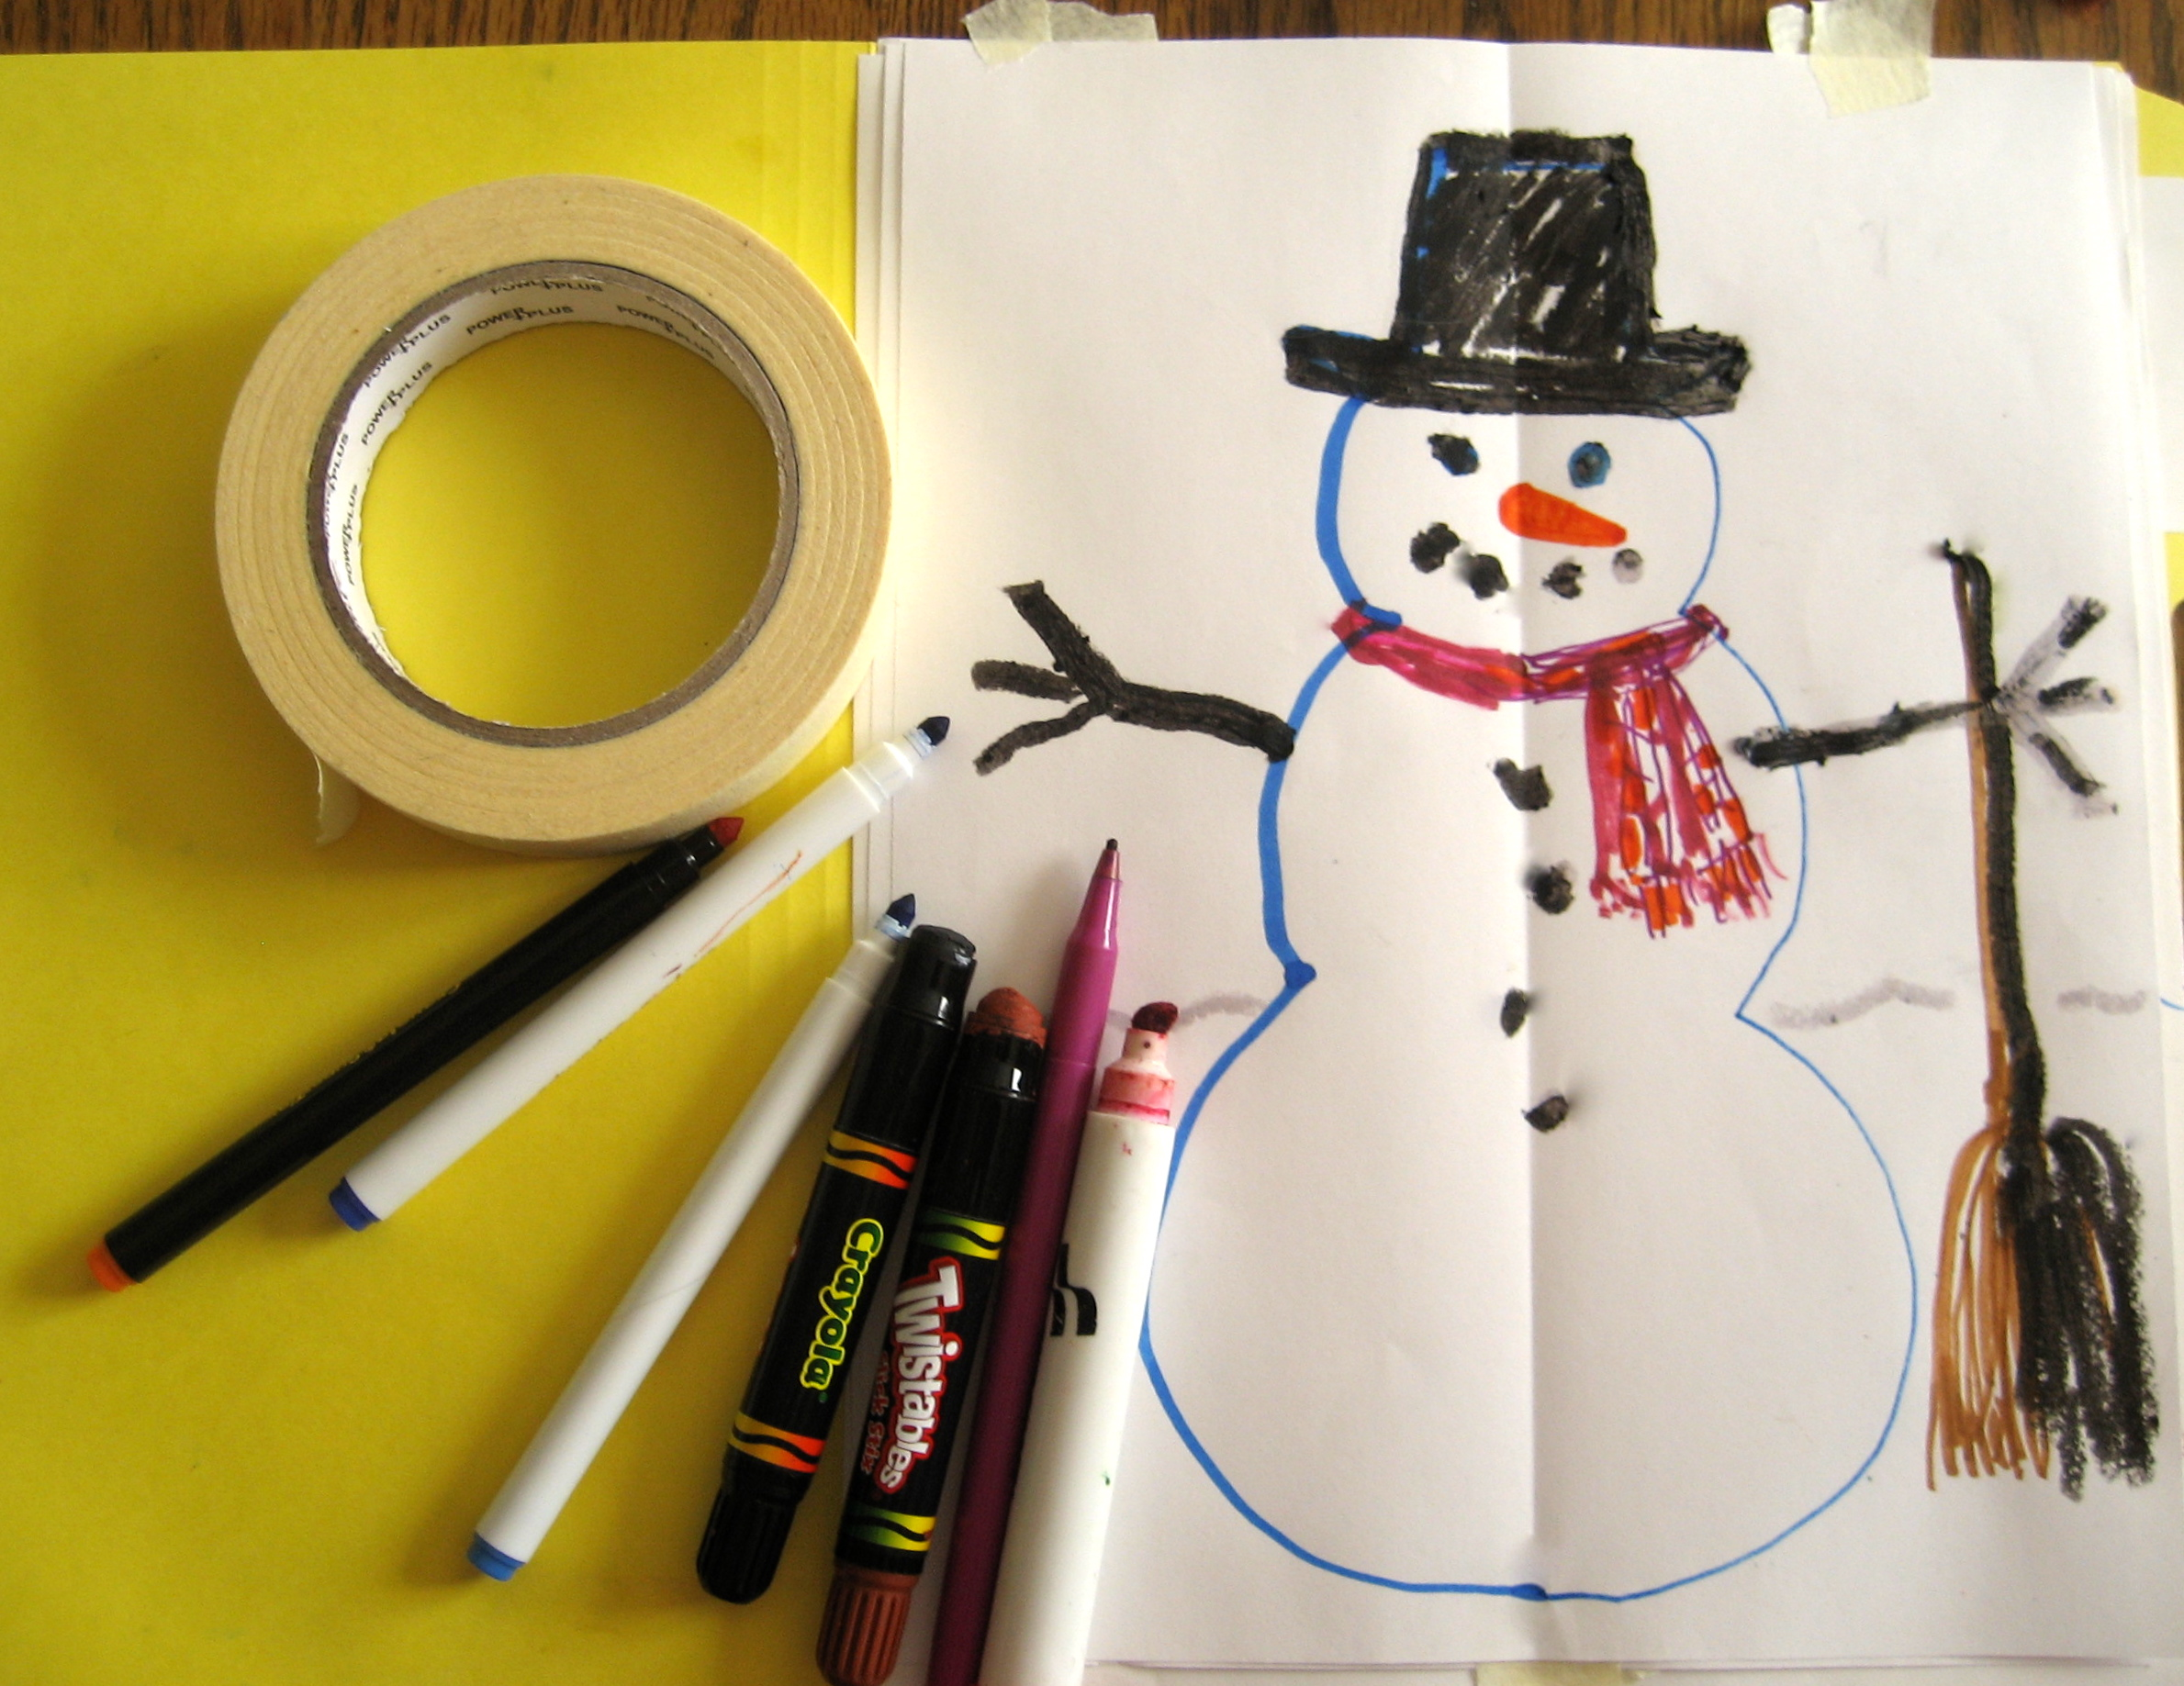 Out and down, out and down; in, around, around, around, to build a Double Doodle snowman!